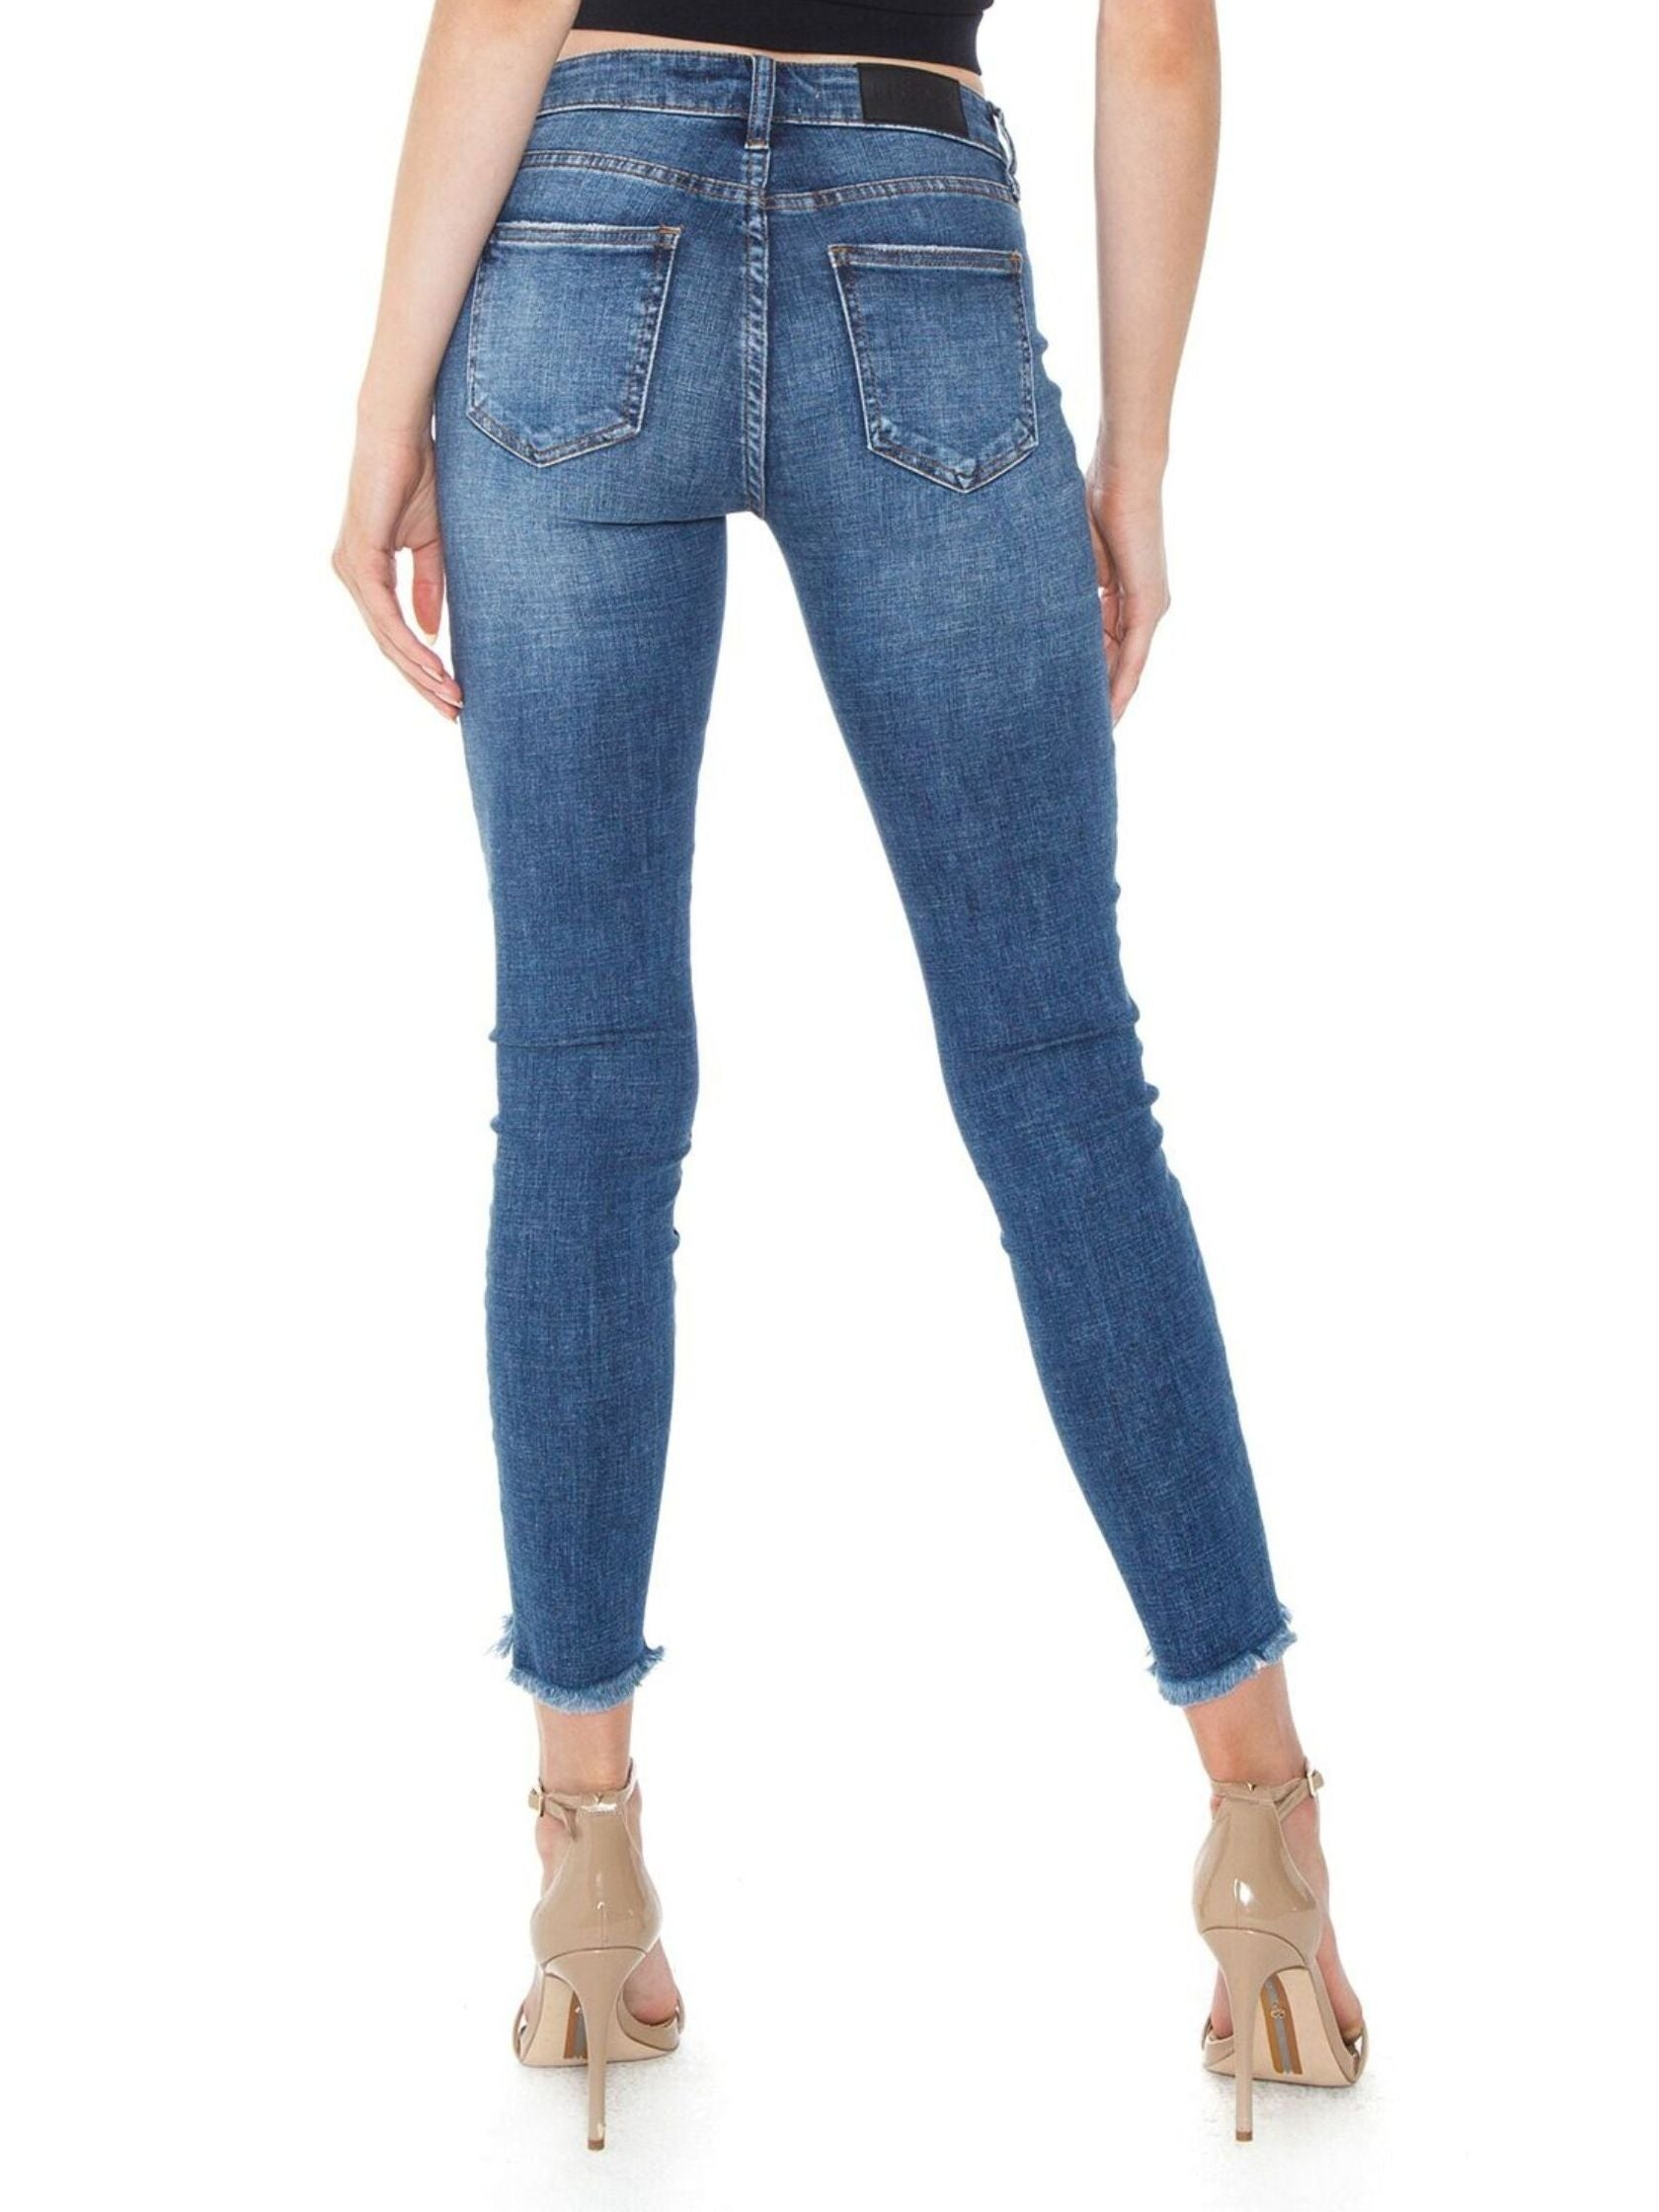 Women outfit in a denim rental from PISTOLA called Audrey Mid Rise Skinny